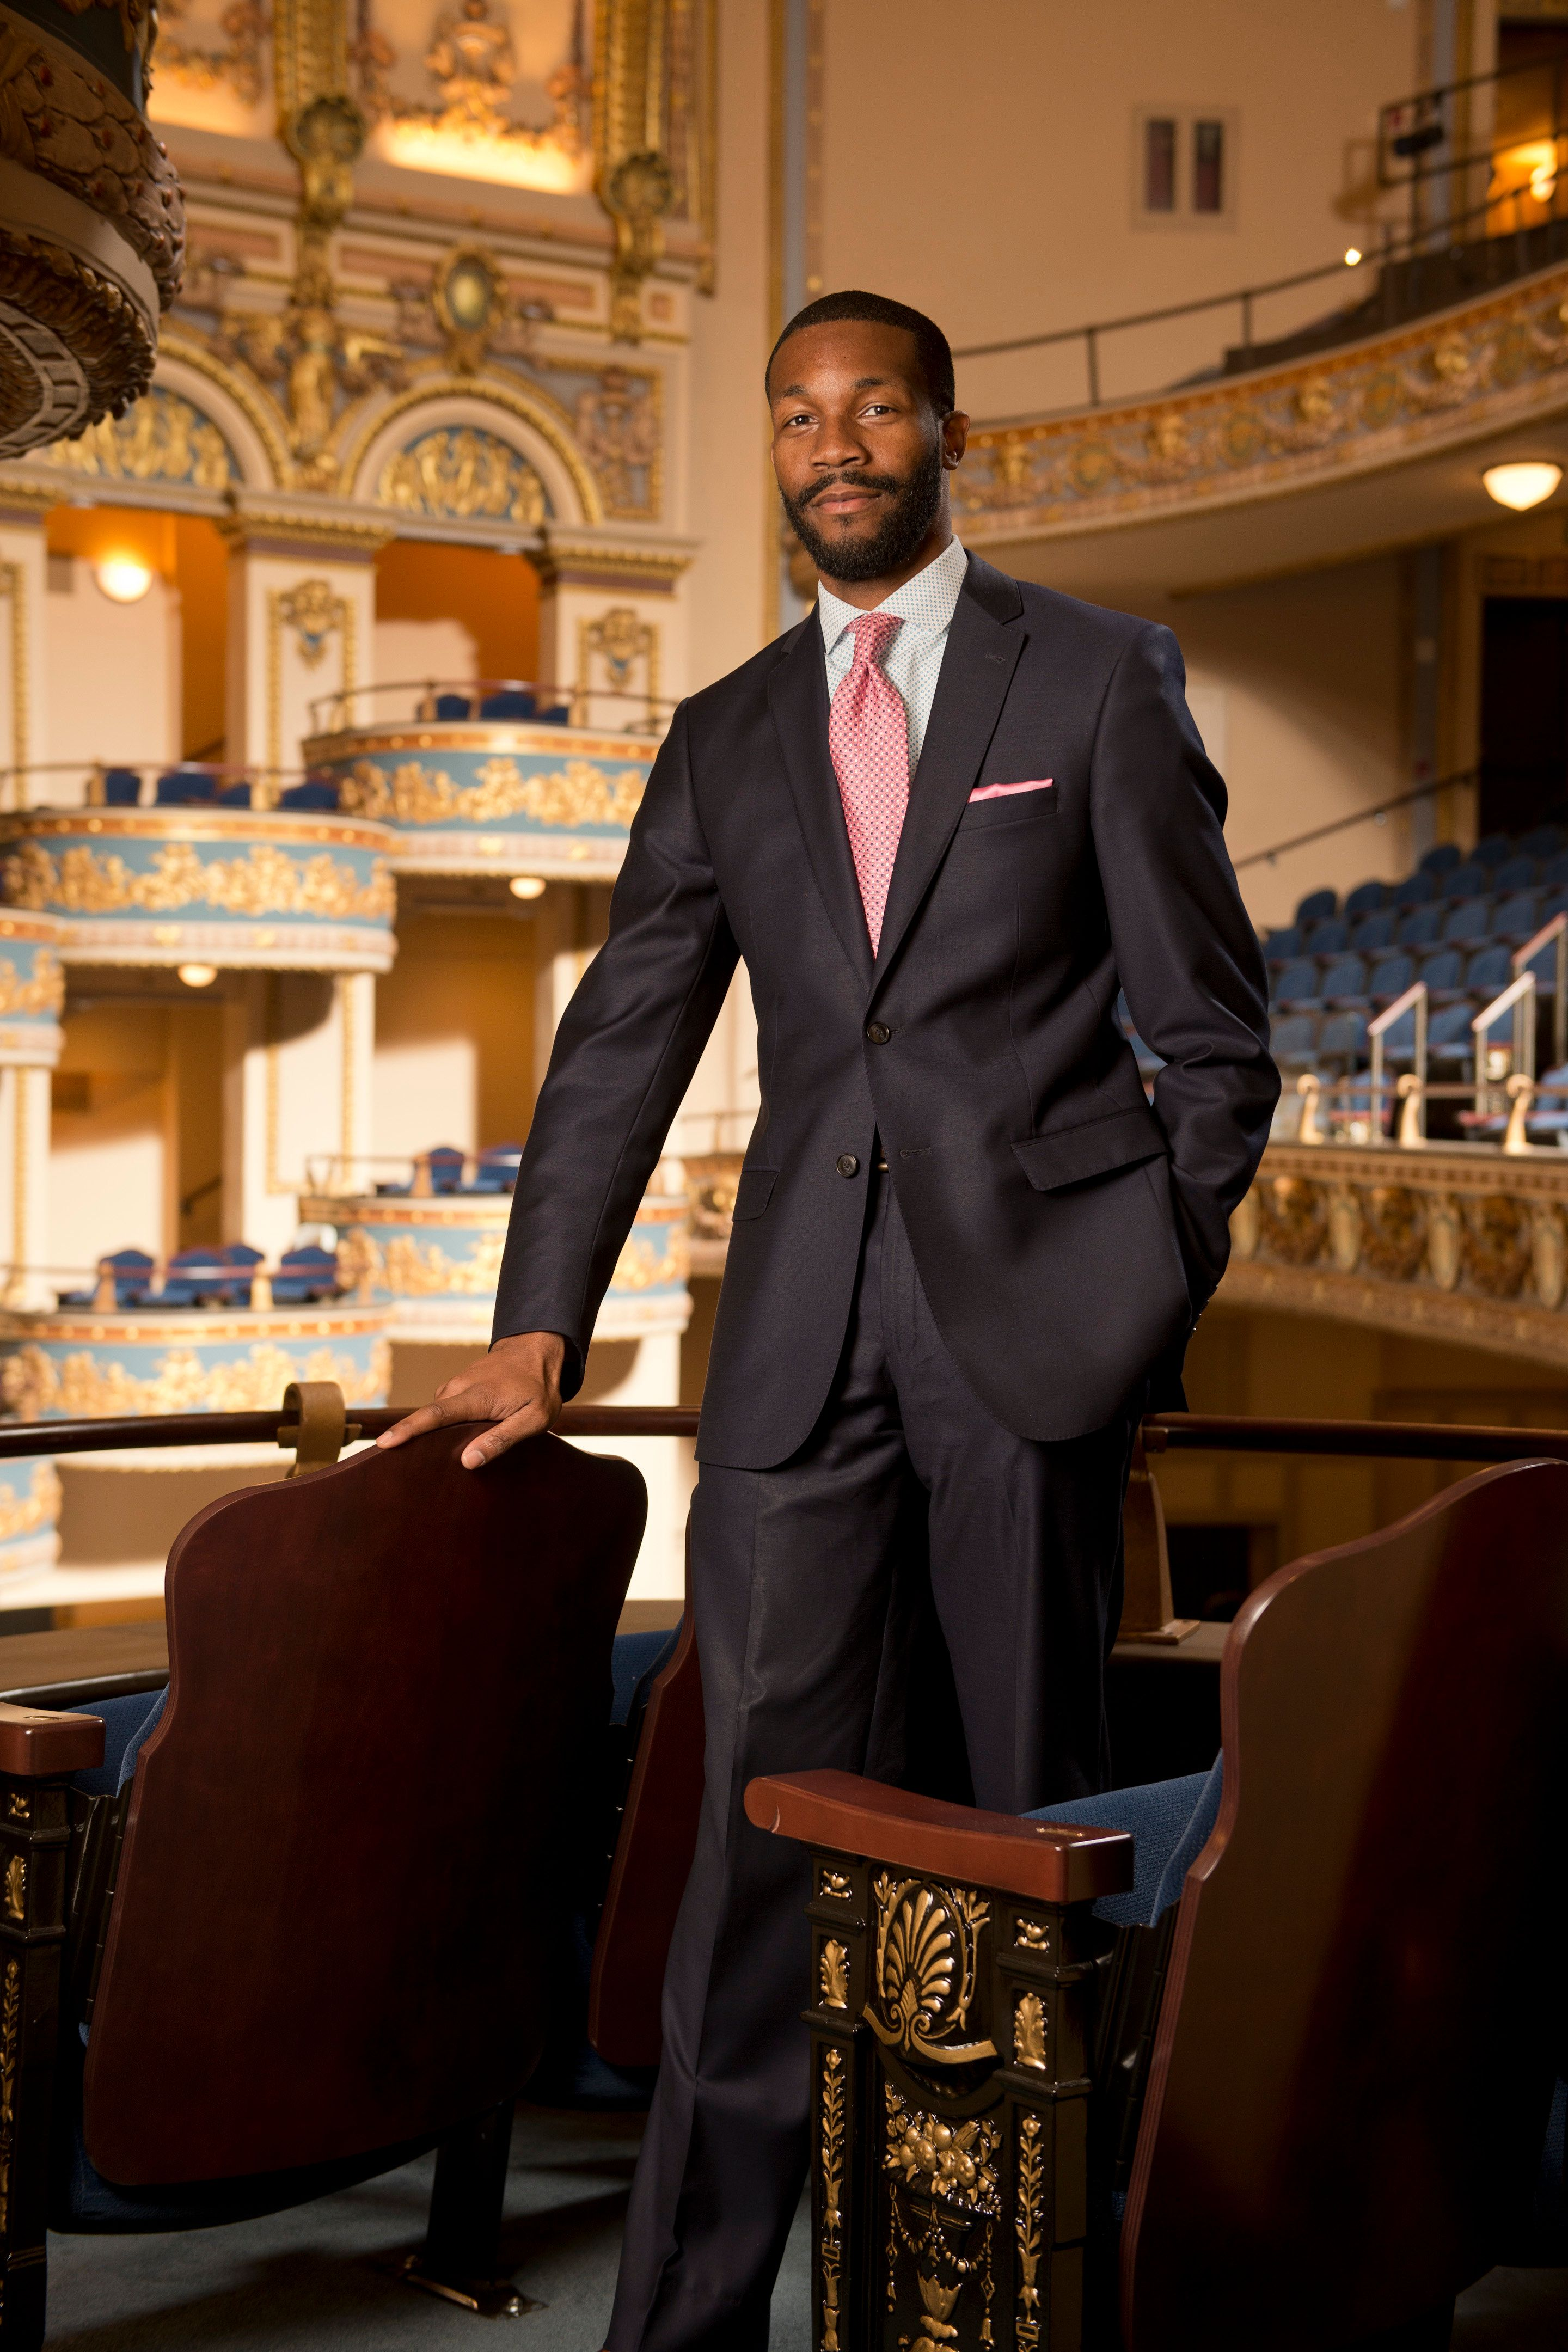 Randall Woodfin, 36, is challenging Birmingham Mayor William Bell. If Woodfin wins, he would be the youngest mayor in the cit